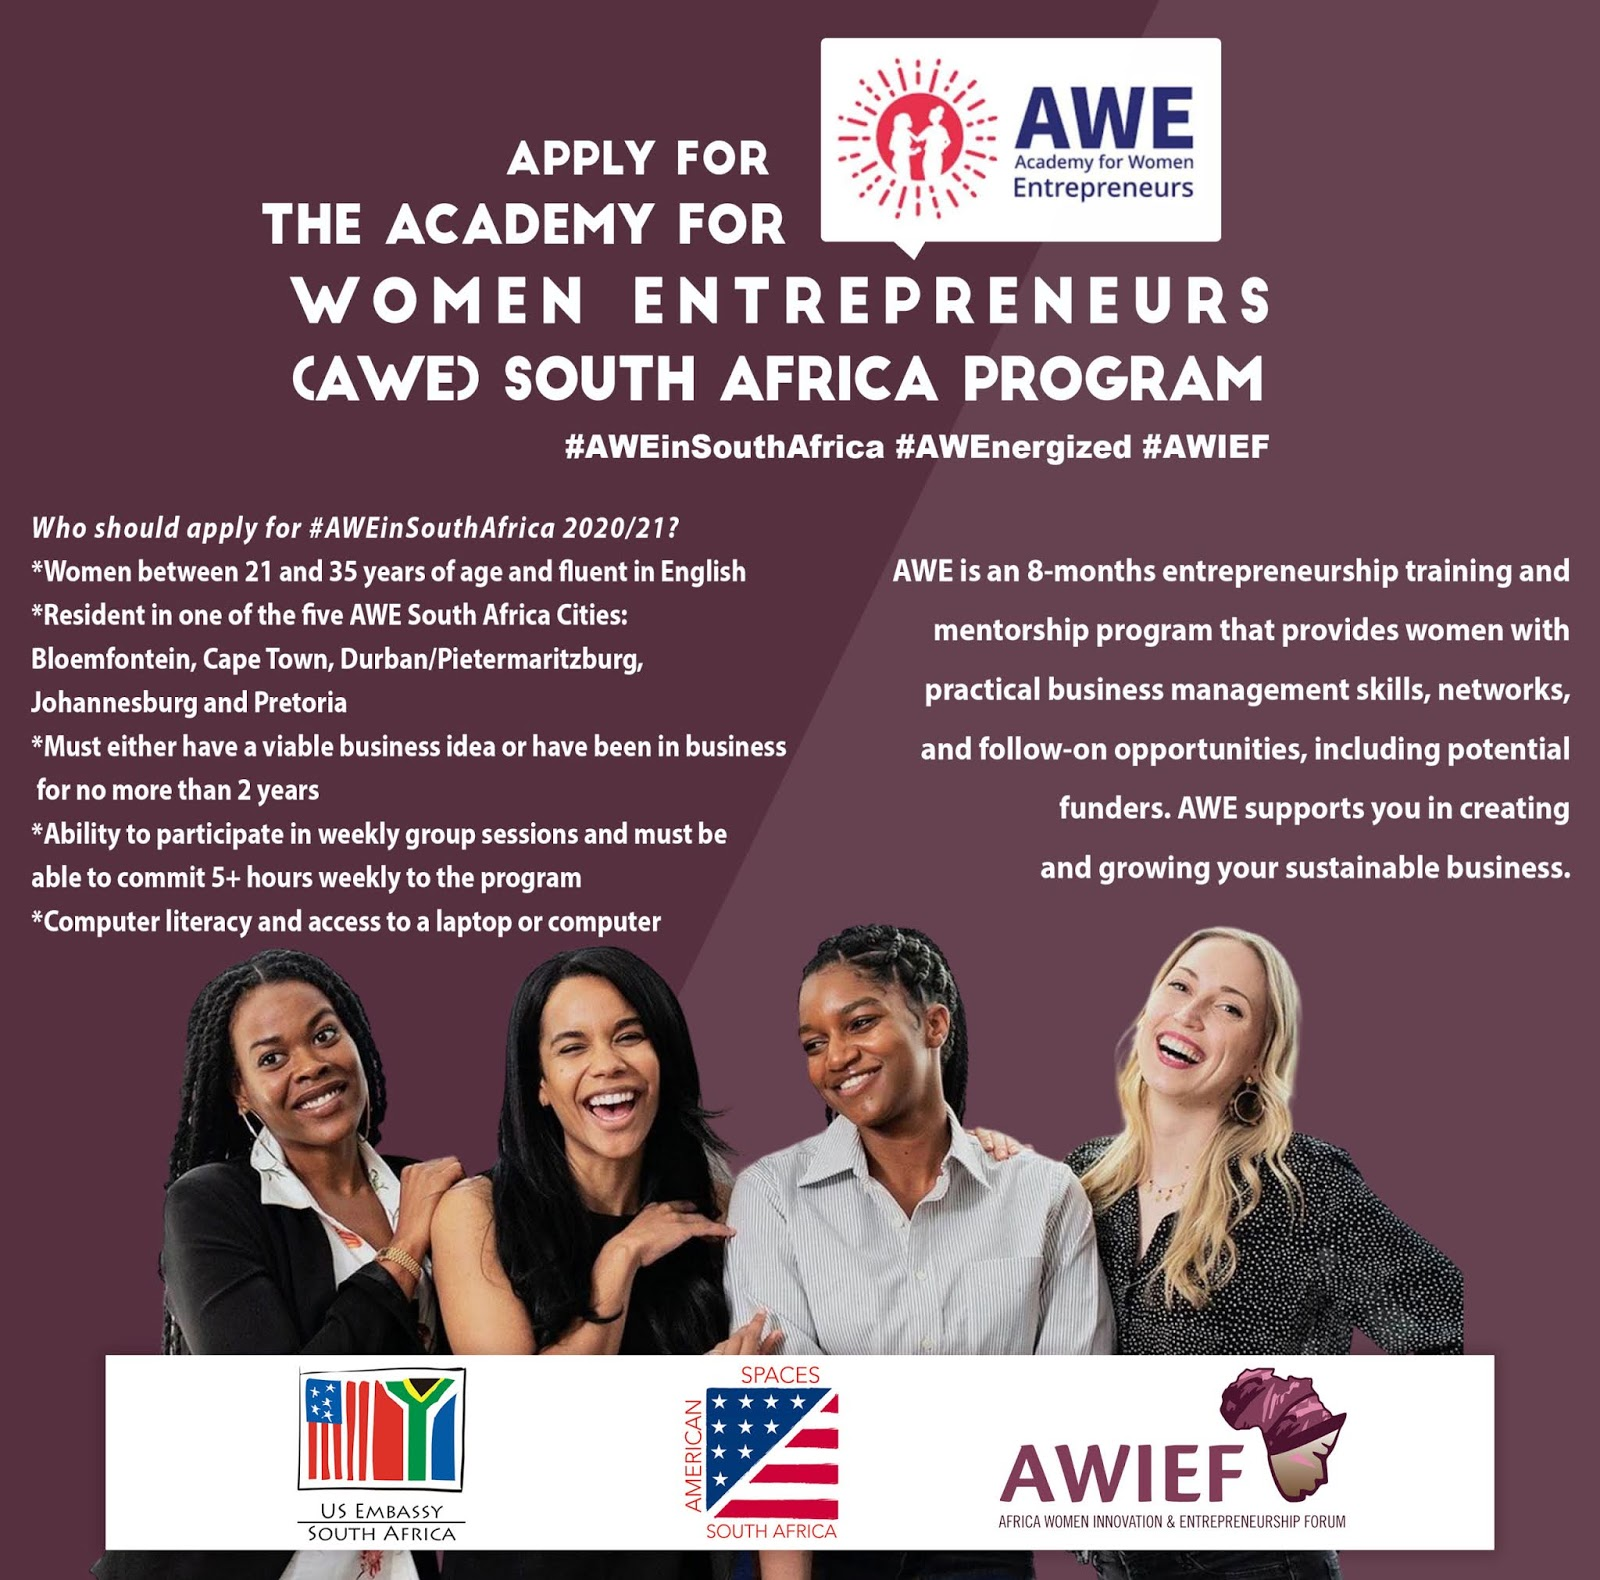 US Embassy/AWIEF Academy for Women Entrepreneurs (AWE) South Africa Program 2020